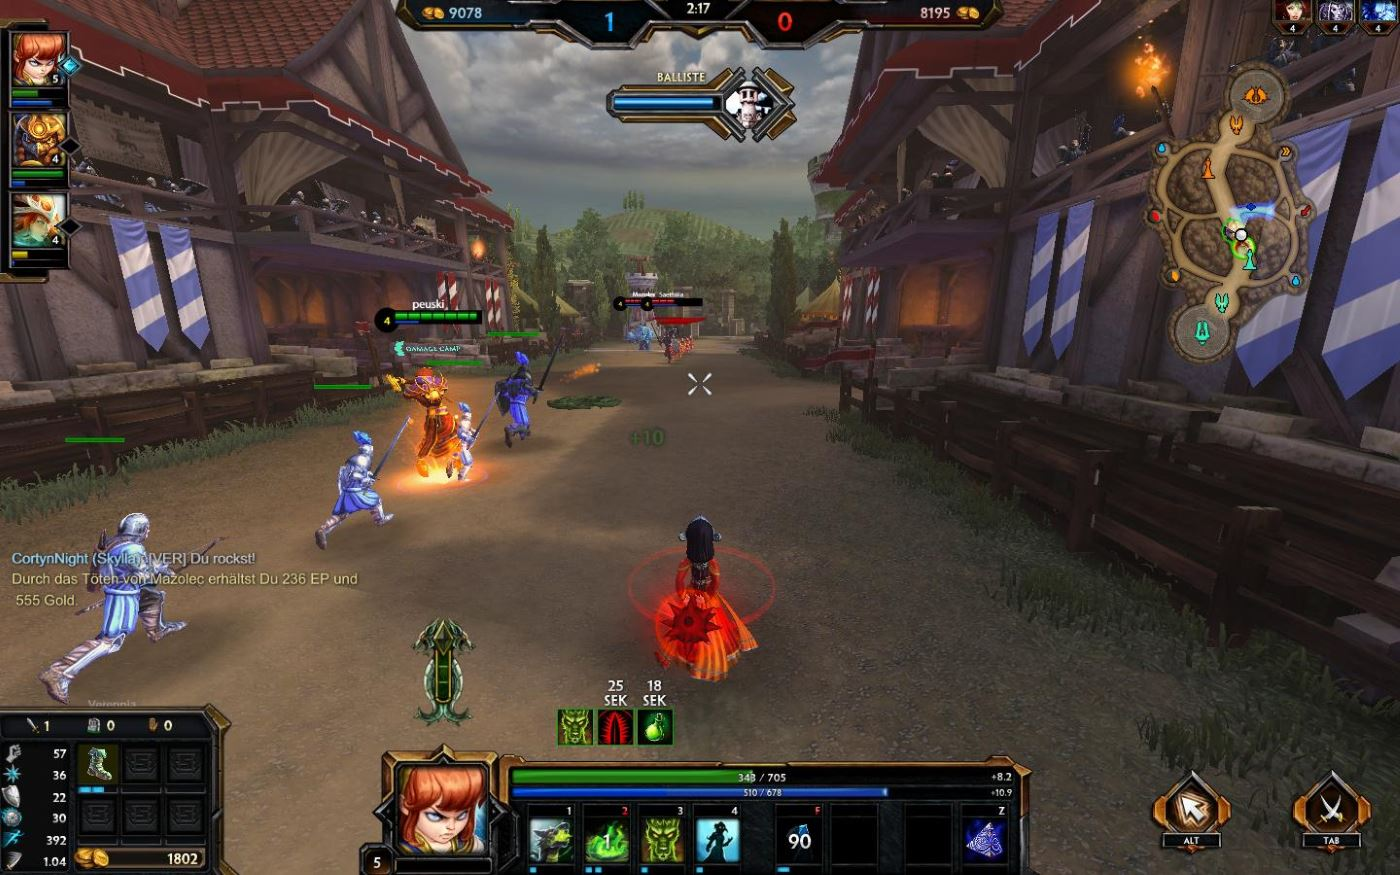 smite matchmaking test Smite does not actually use the elo system, instead using their own matchmaking rating, or mmr system, but the term is frequently used nonetheless escape: ability that allows a god to get away from enemy players.